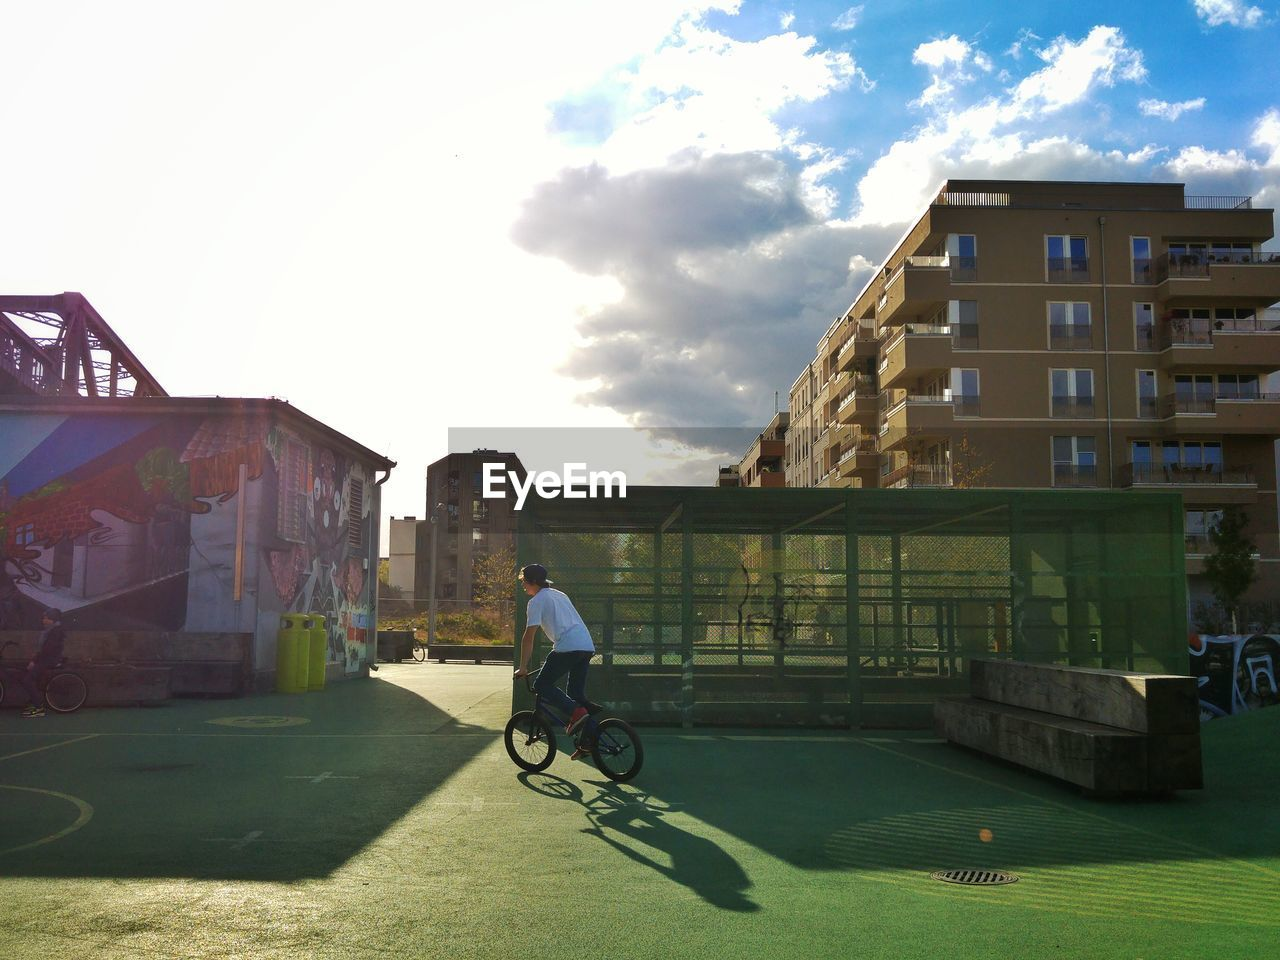 architecture, built structure, building exterior, sunlight, bicycle, day, outdoors, real people, full length, one person, sky, city, city life, men, leisure activity, lifestyles, shadow, standing, grass, people